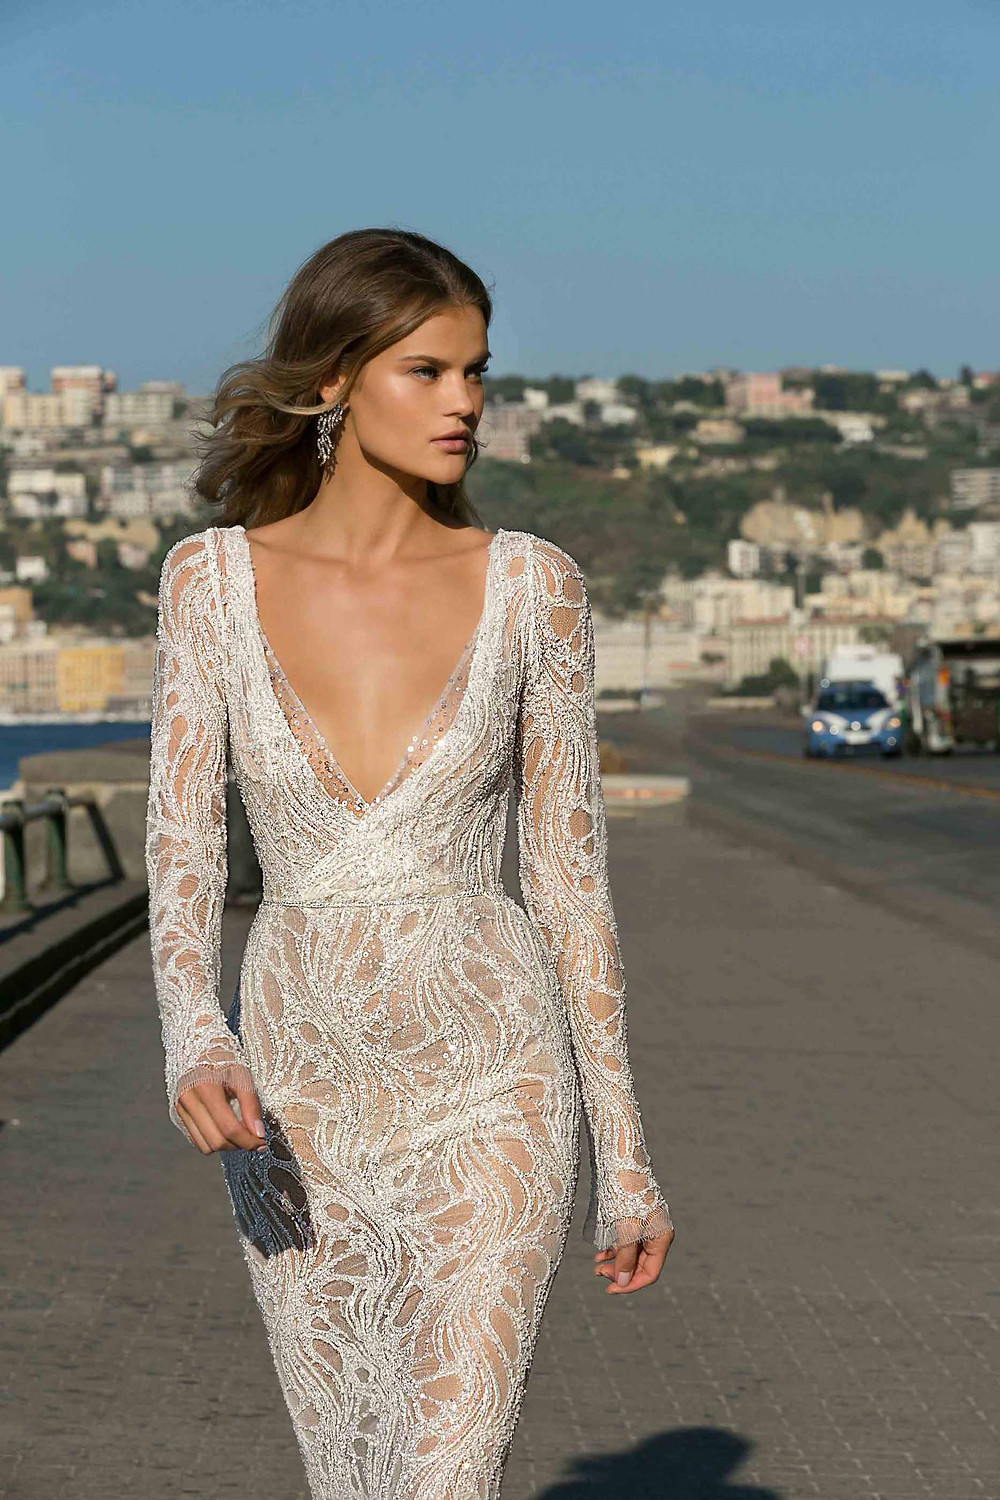 A Berta 2020 sexy sheath wedding dress, with lace, a low v neckline and long sleeves